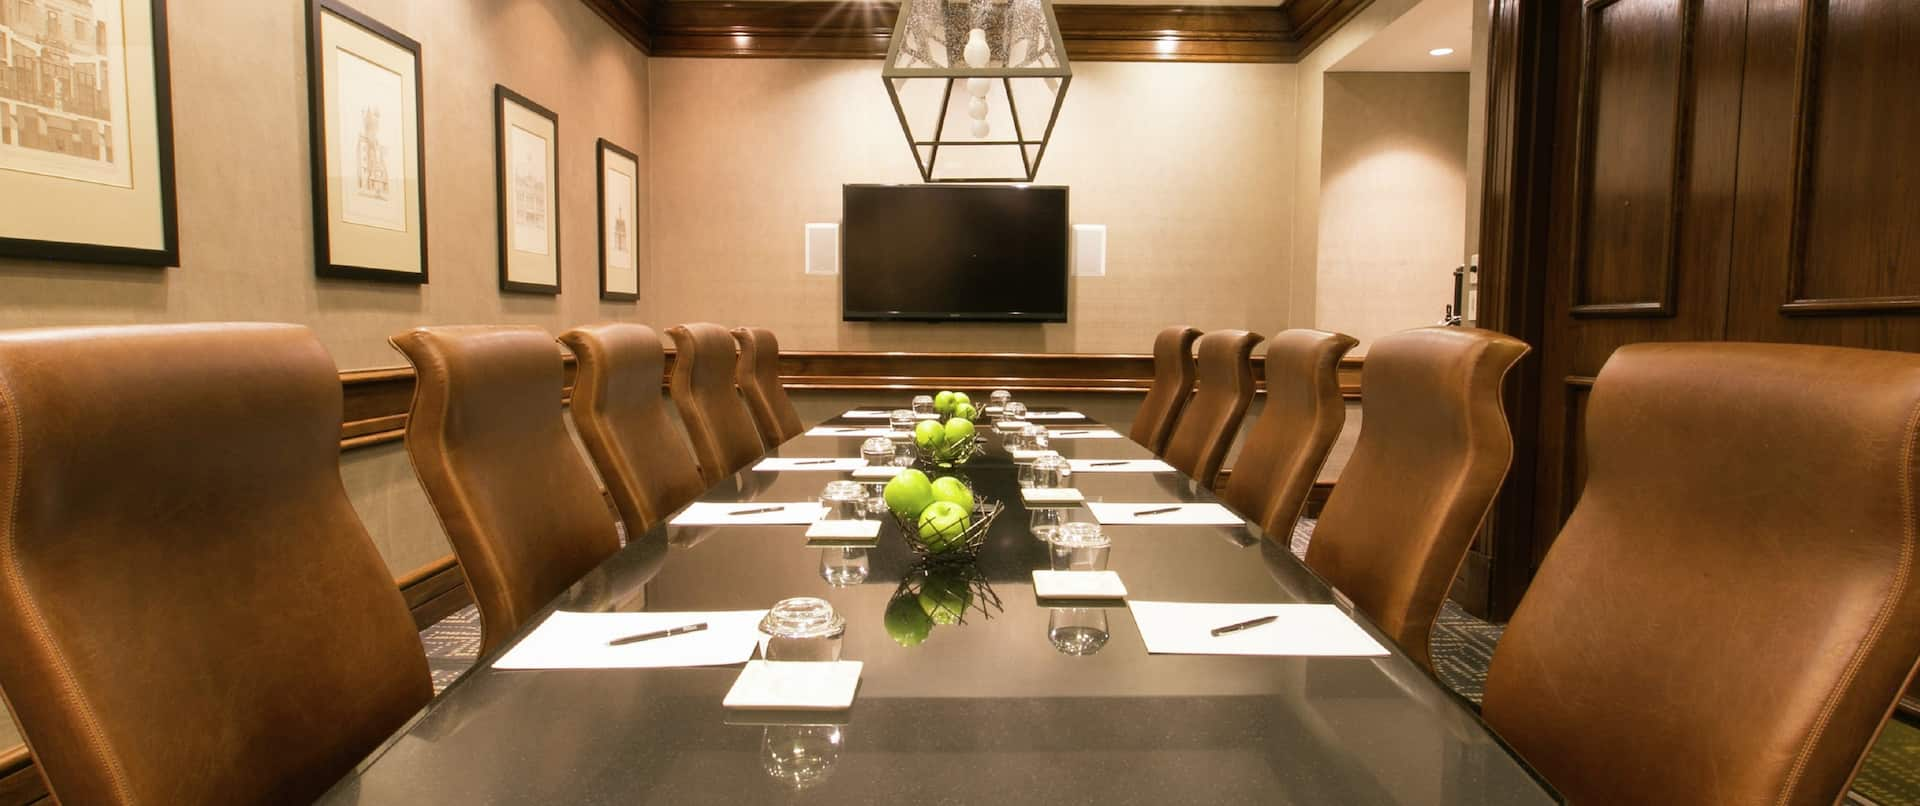 Conference Table and Chairs in Normandy Boardroom